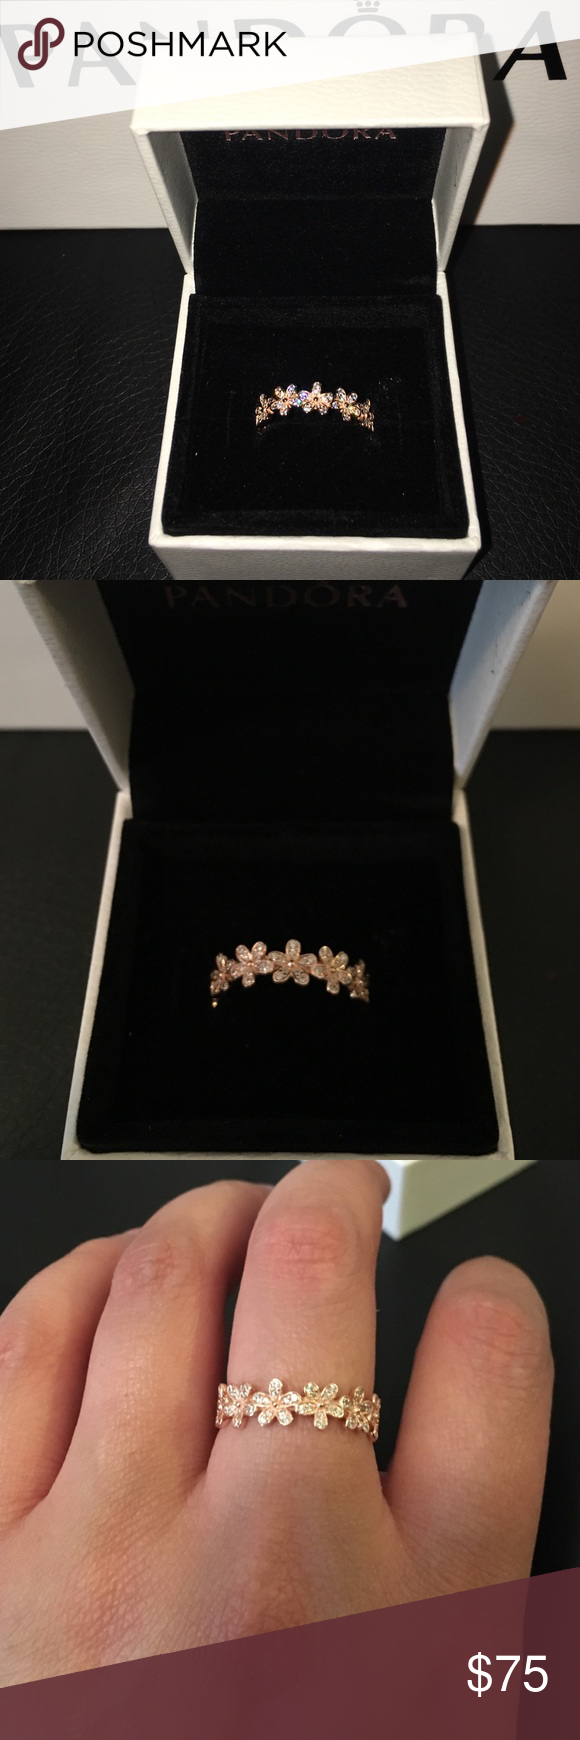 cff03b2f5 Pandora Rose gold dazzling daisy ring sz 7 New never used. Comes with box  and bag. Any questions pls ask. Ty Pandora Jewelry Rings